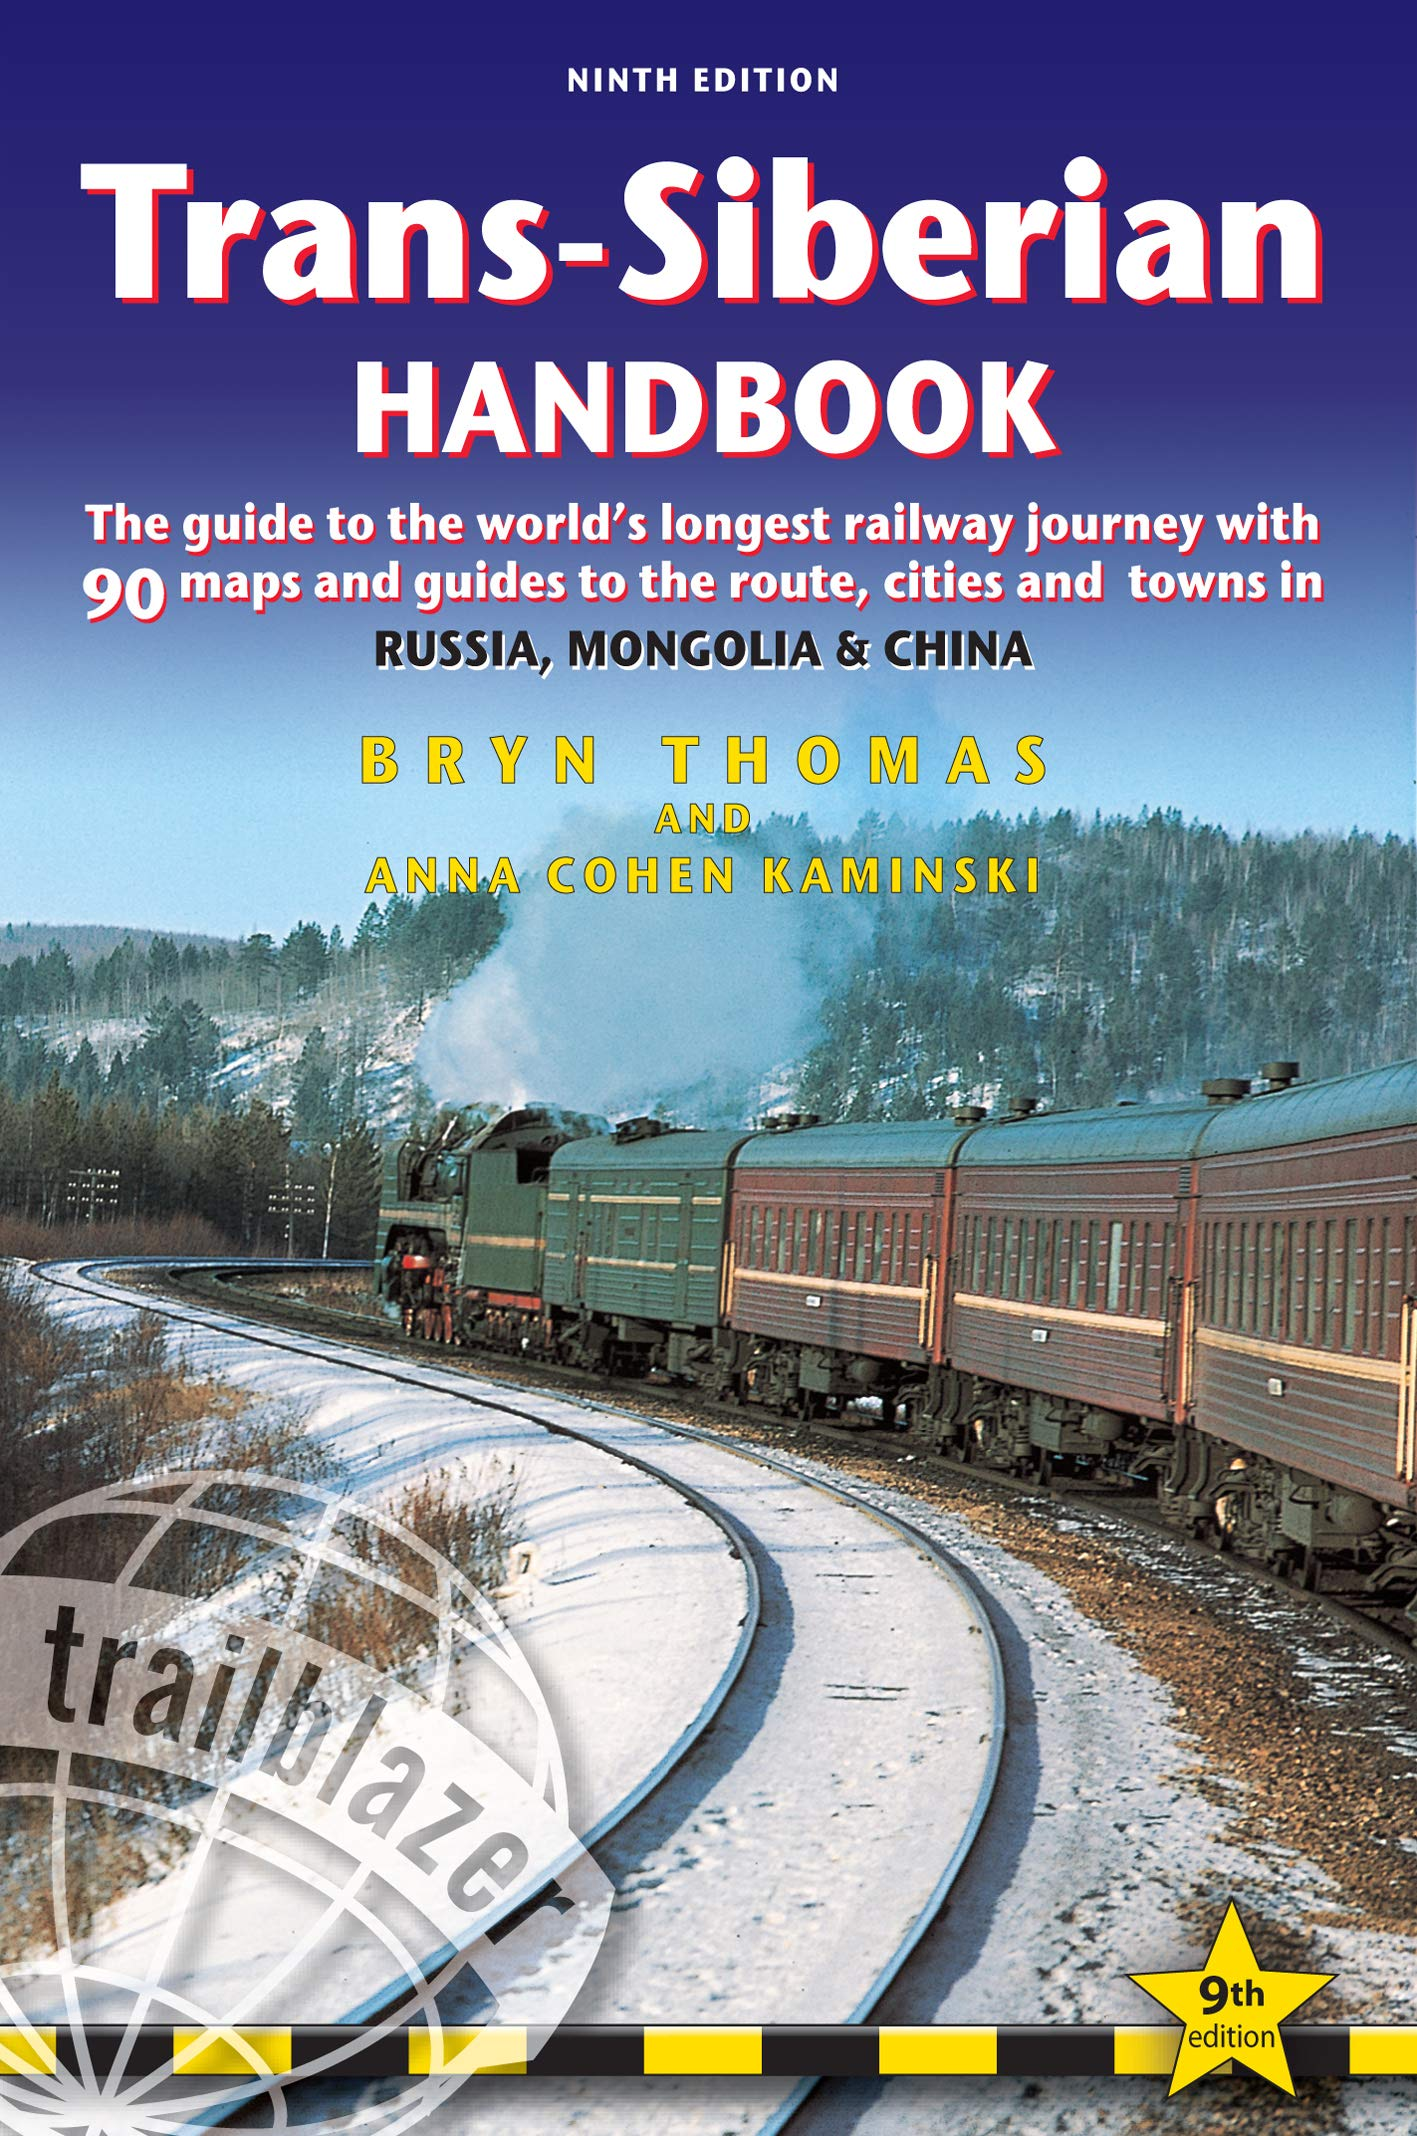 Trans Siberian Handbook  Trans Siberian Trans Mongolian Trans Manchurian And Siberian Bam Routes  Includes Guides To 25 Cities